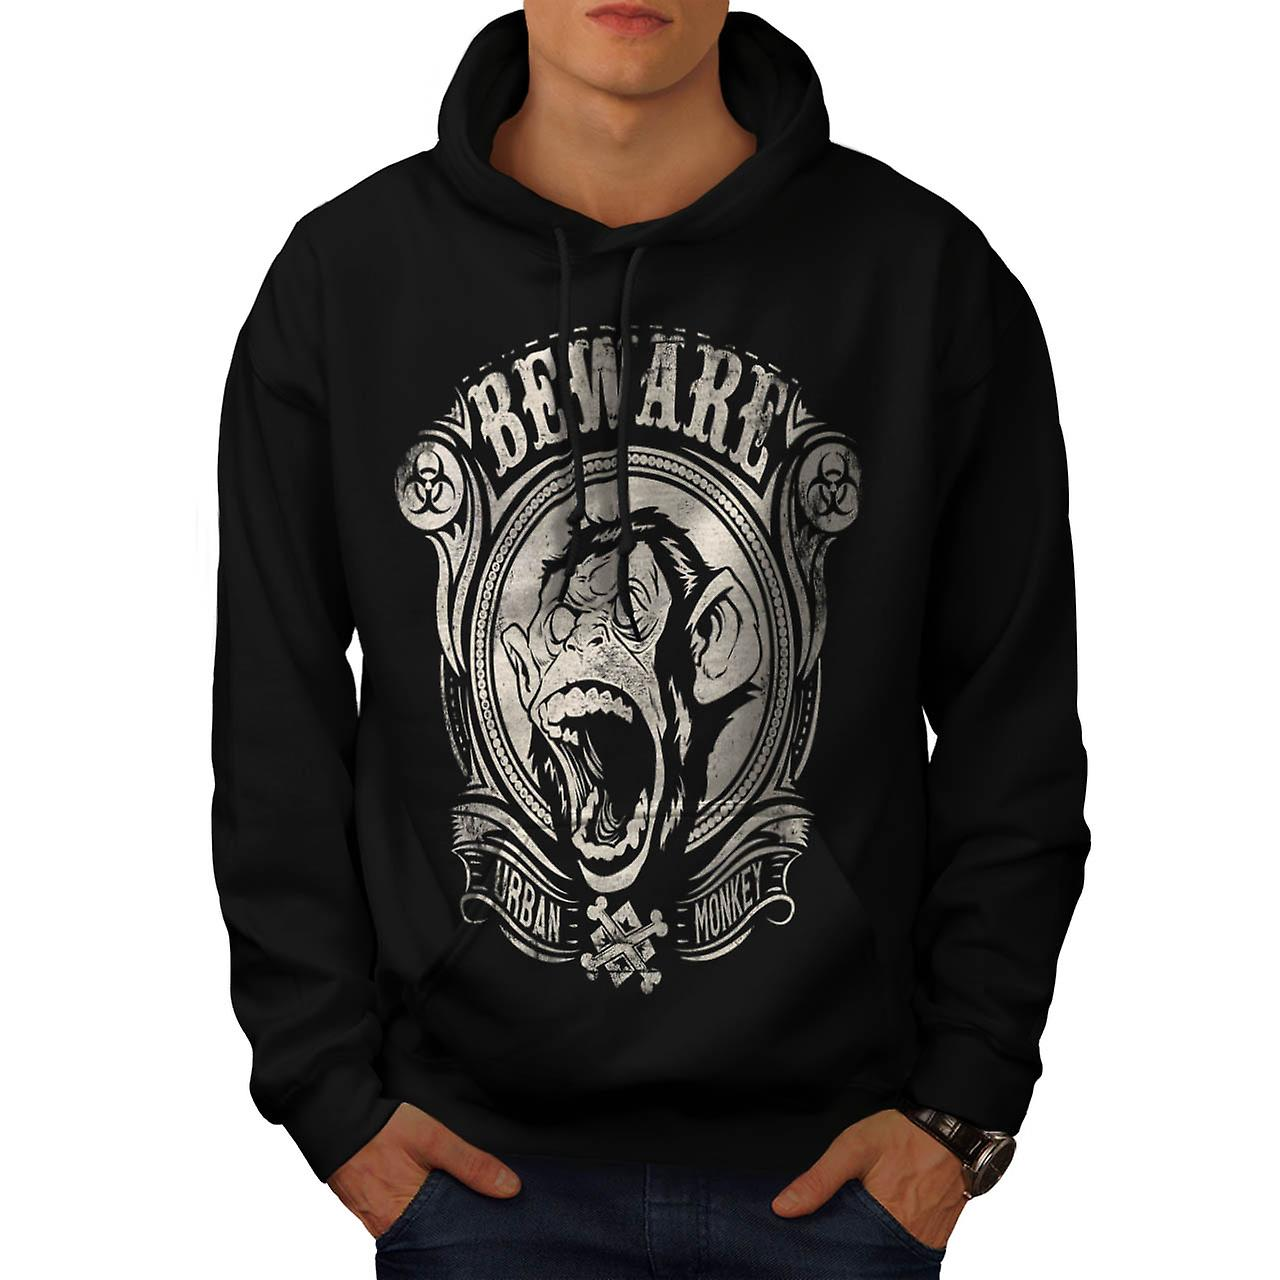 Beware Urban Monkey Danger Chimp Men Black Hoodie | Wellcoda